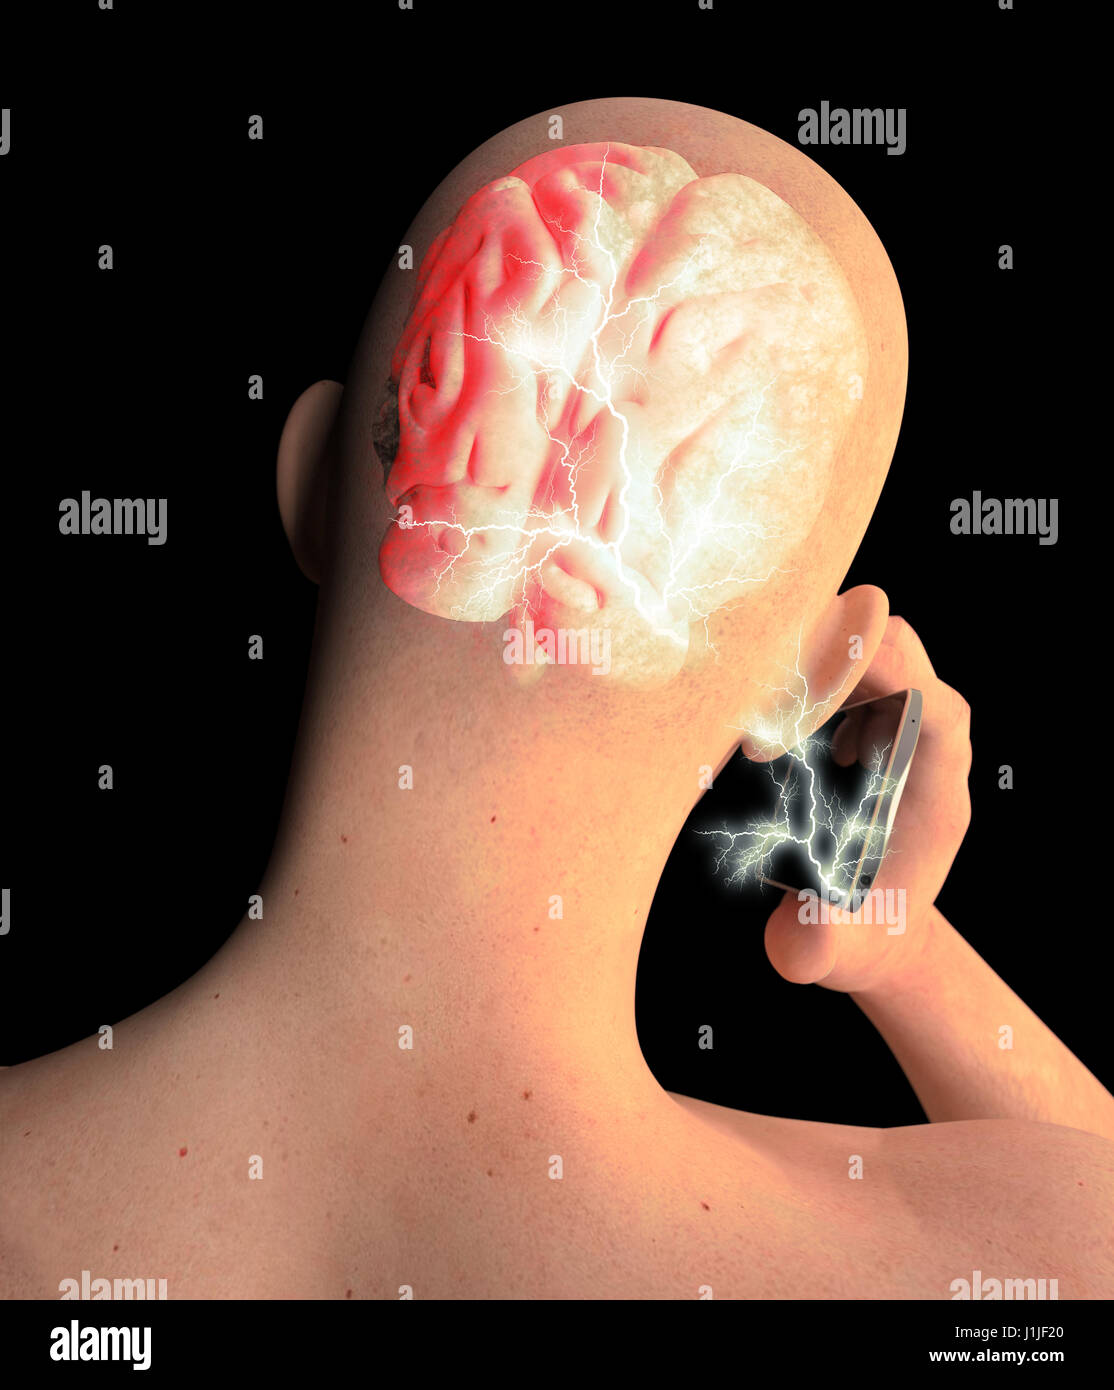 Brain, Man with Cell Phone, Brain Problems, Cause Of Tumor, Degenerative Diseases, Parkinson's, Profile Face. - Stock Image